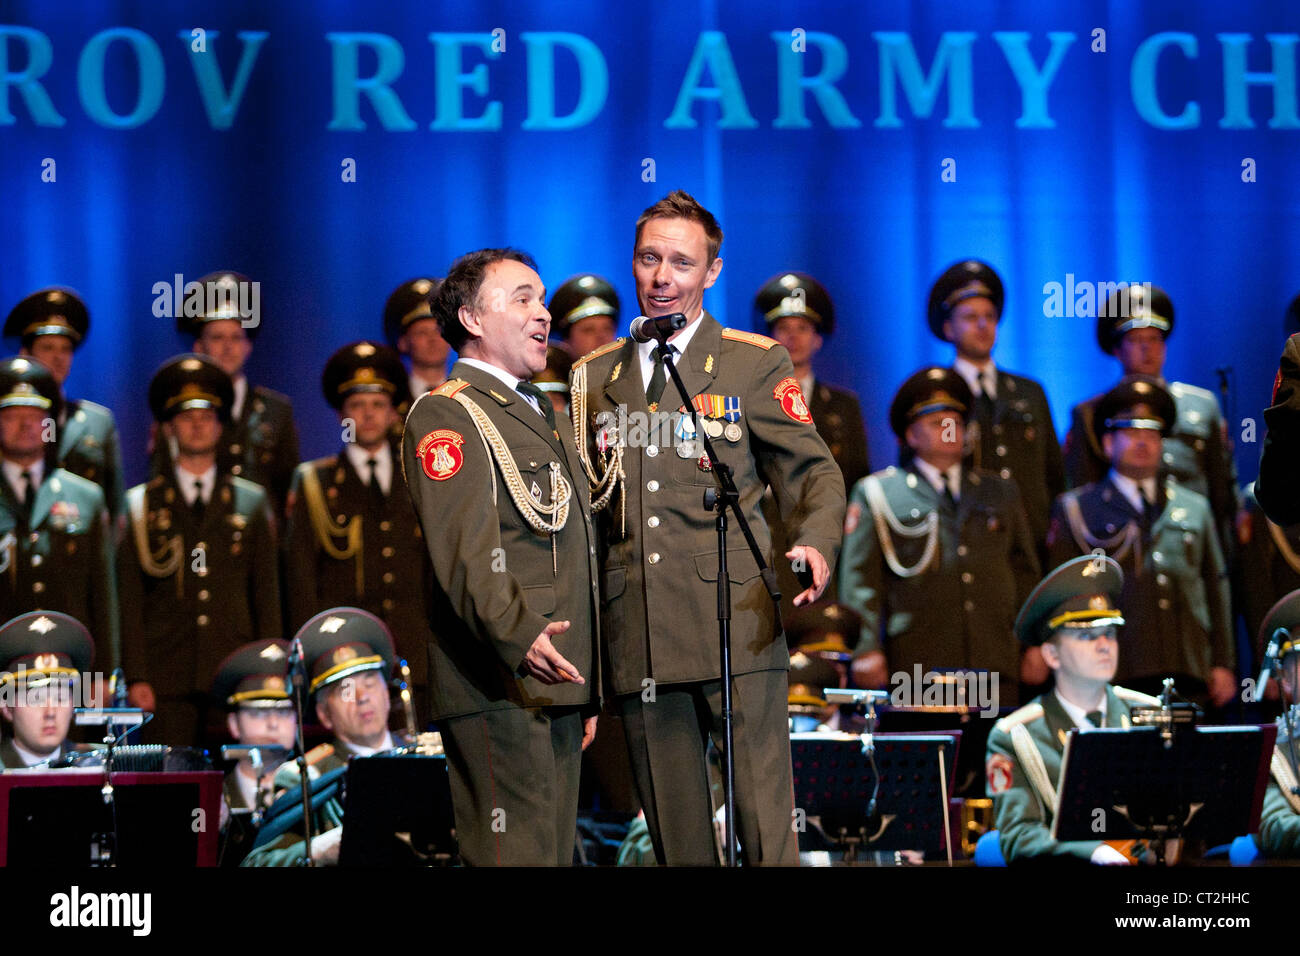 Red Army Choir Stock Photos & Red Army Choir Stock Images